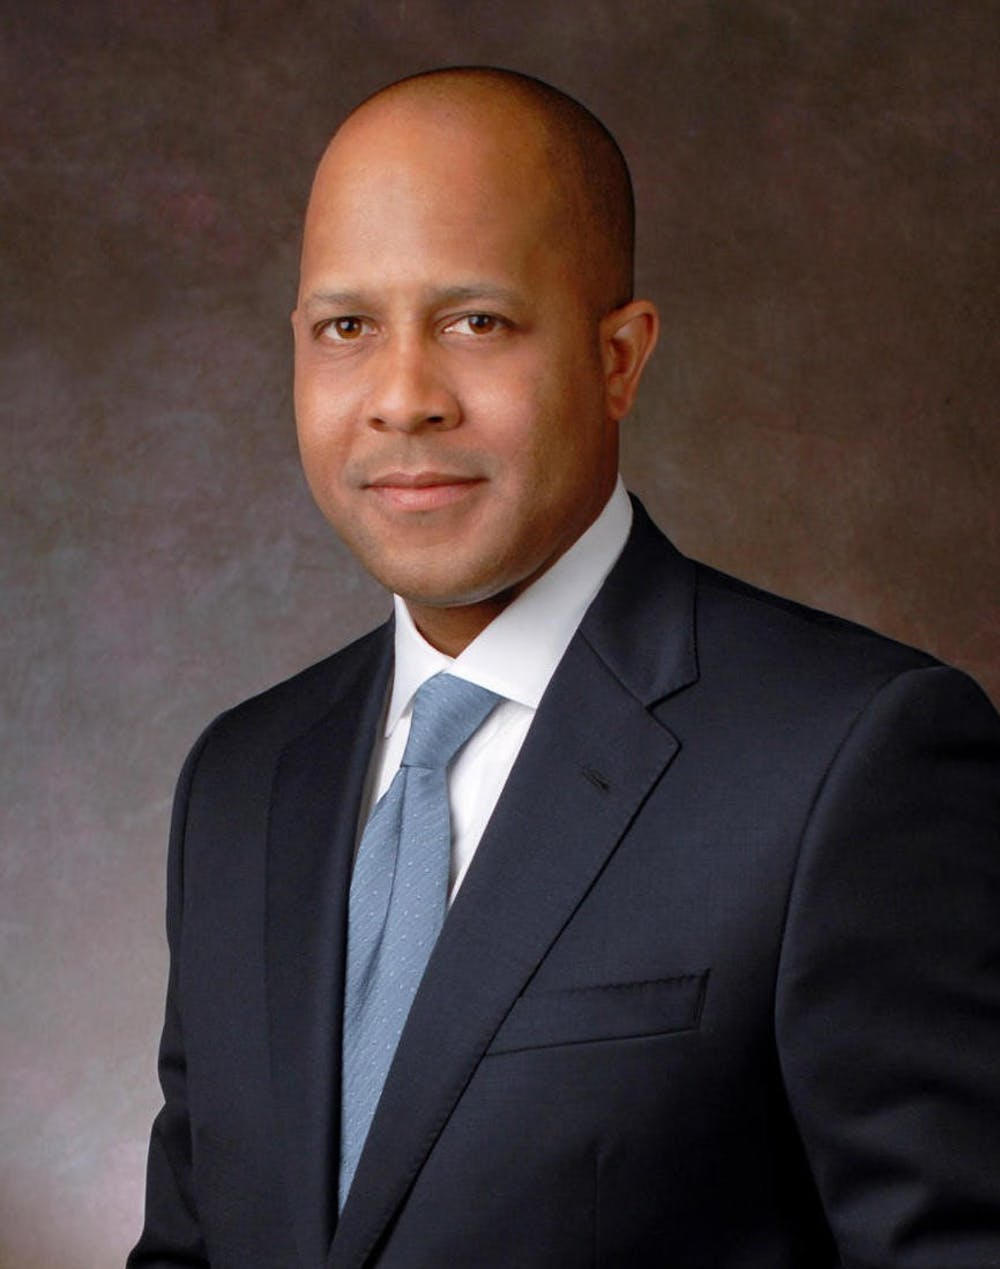 <p>Jess Pegues has returned to Miami over the years including for a 2018 lecture and as the May 2019 commencement speaker.</p>